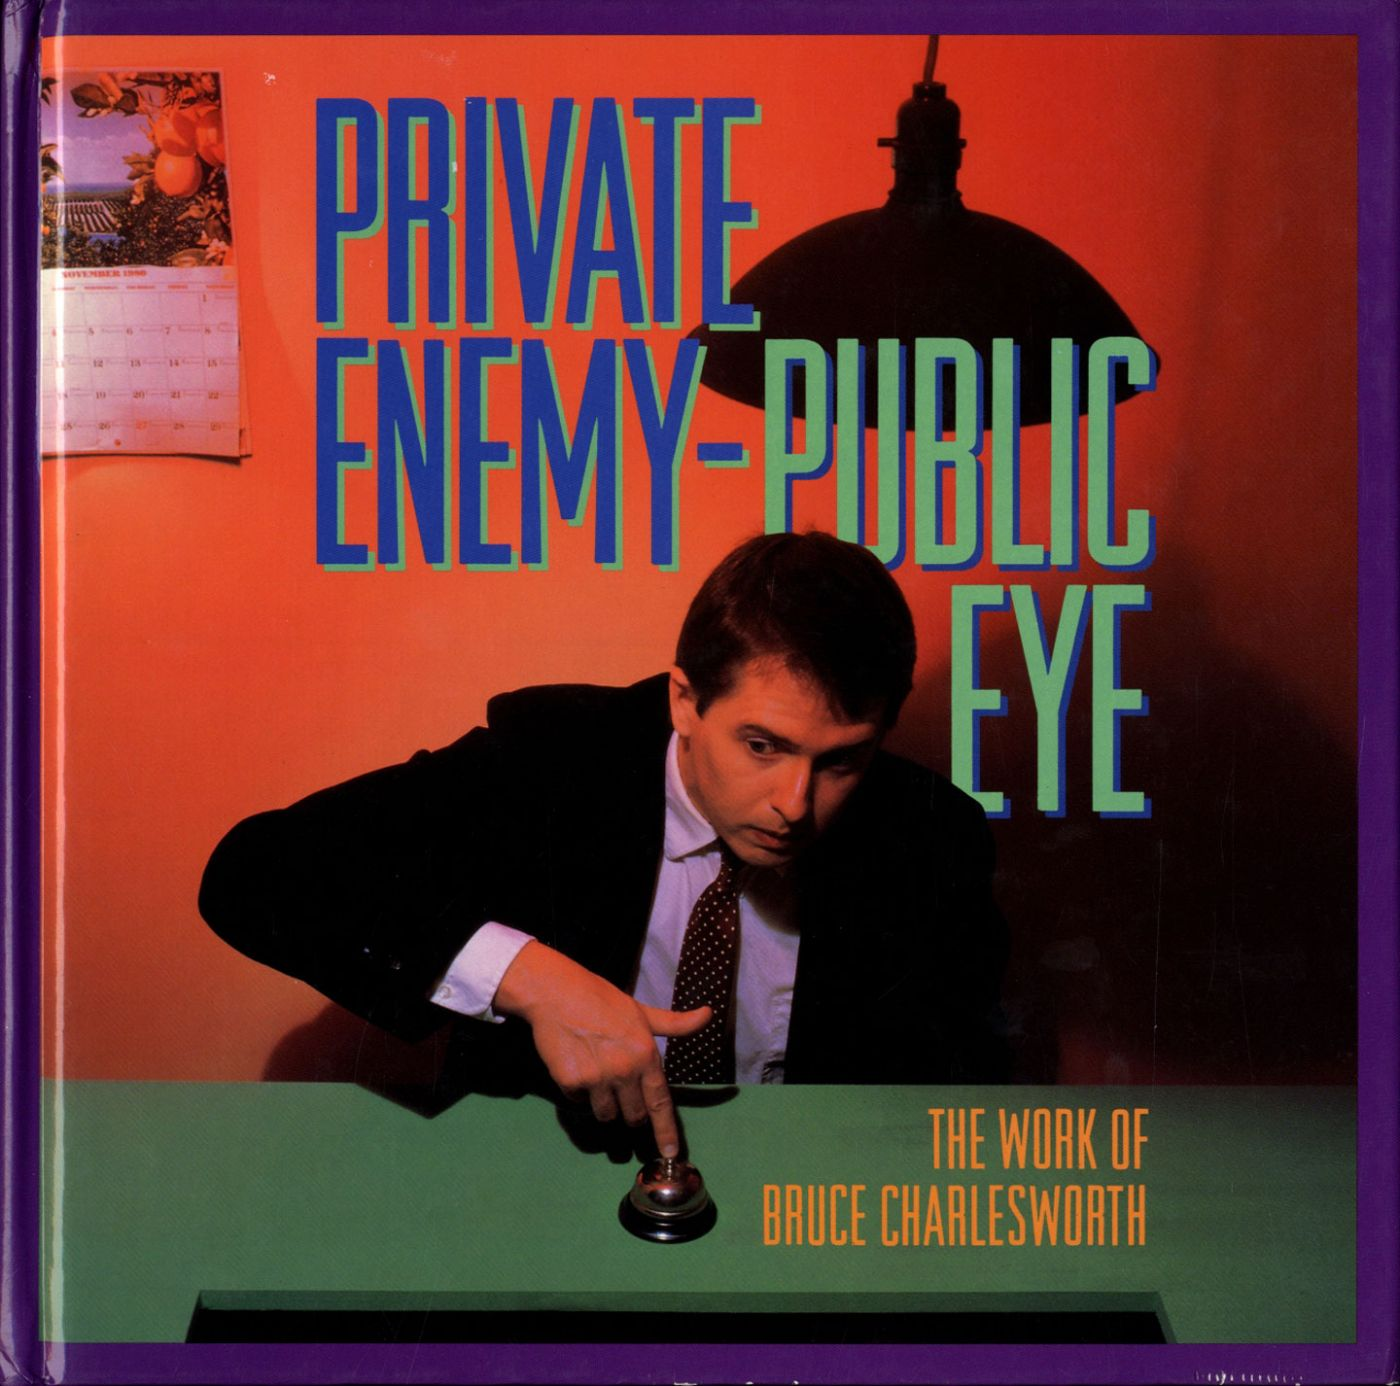 Private Enemy Public Eye: The Work of Bruce Charlesworth (New Images Book), Charlesworth, Bruce